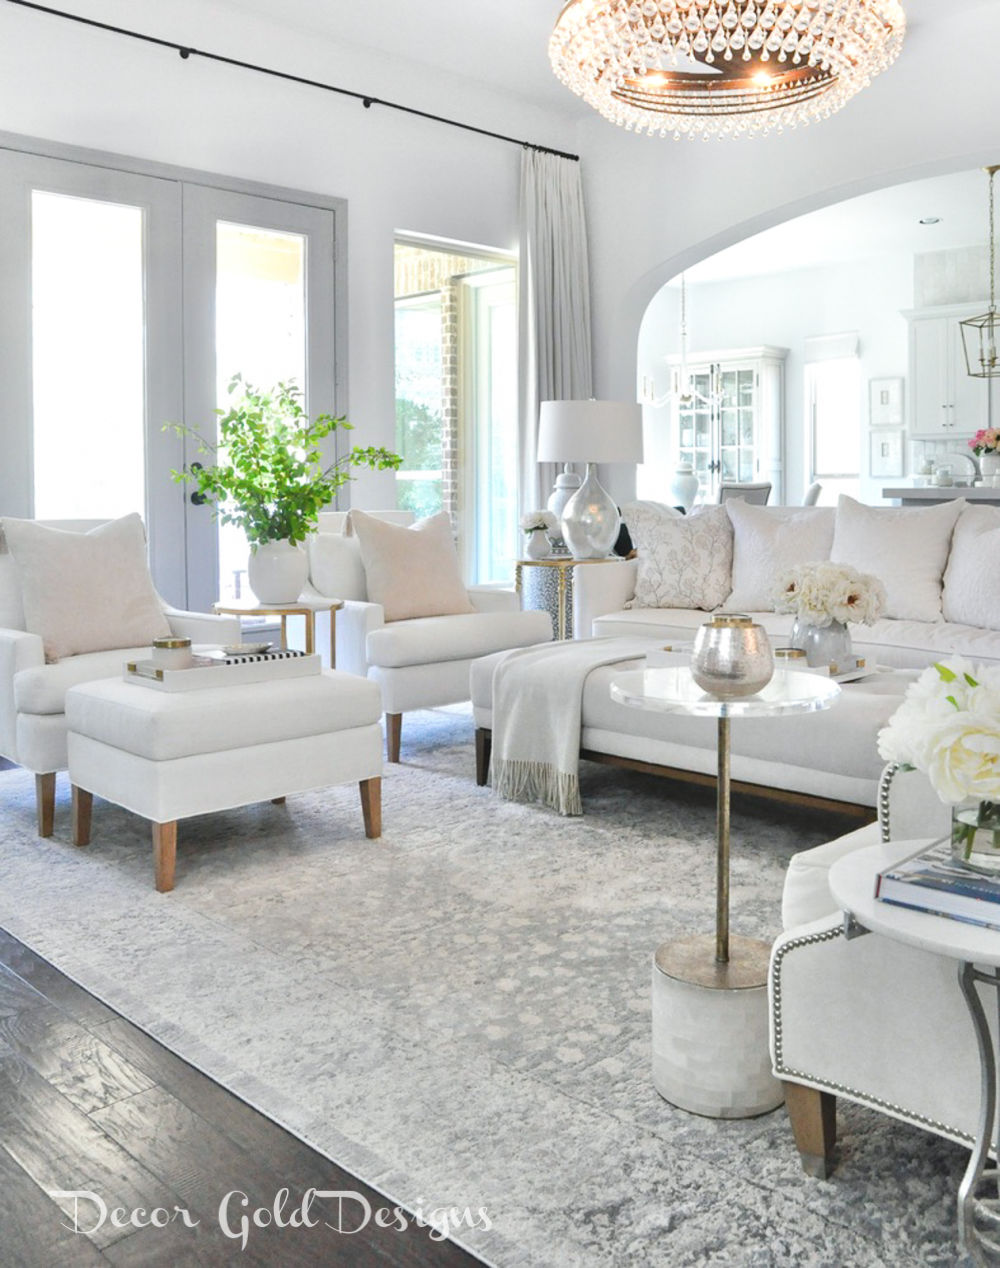 Spring home tour living room white furnishings bright green branches